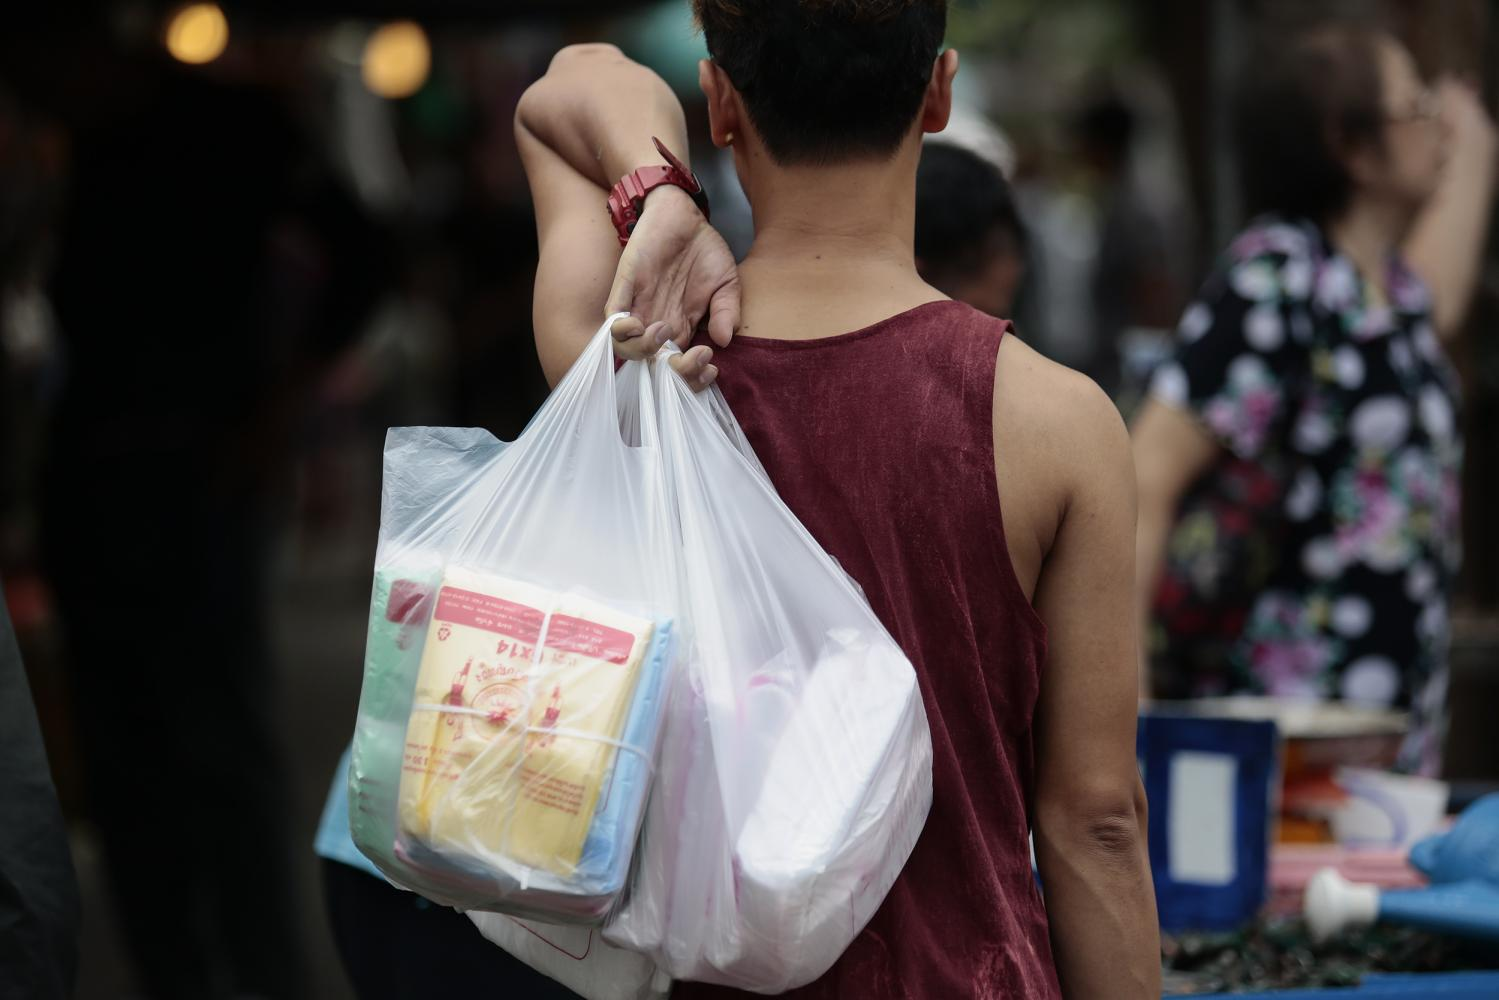 A man carries plastic bags at a market in Bangkok. Thailand is among the world's biggest contributors of ocean plastic waste. PATIPAT JANTHONG